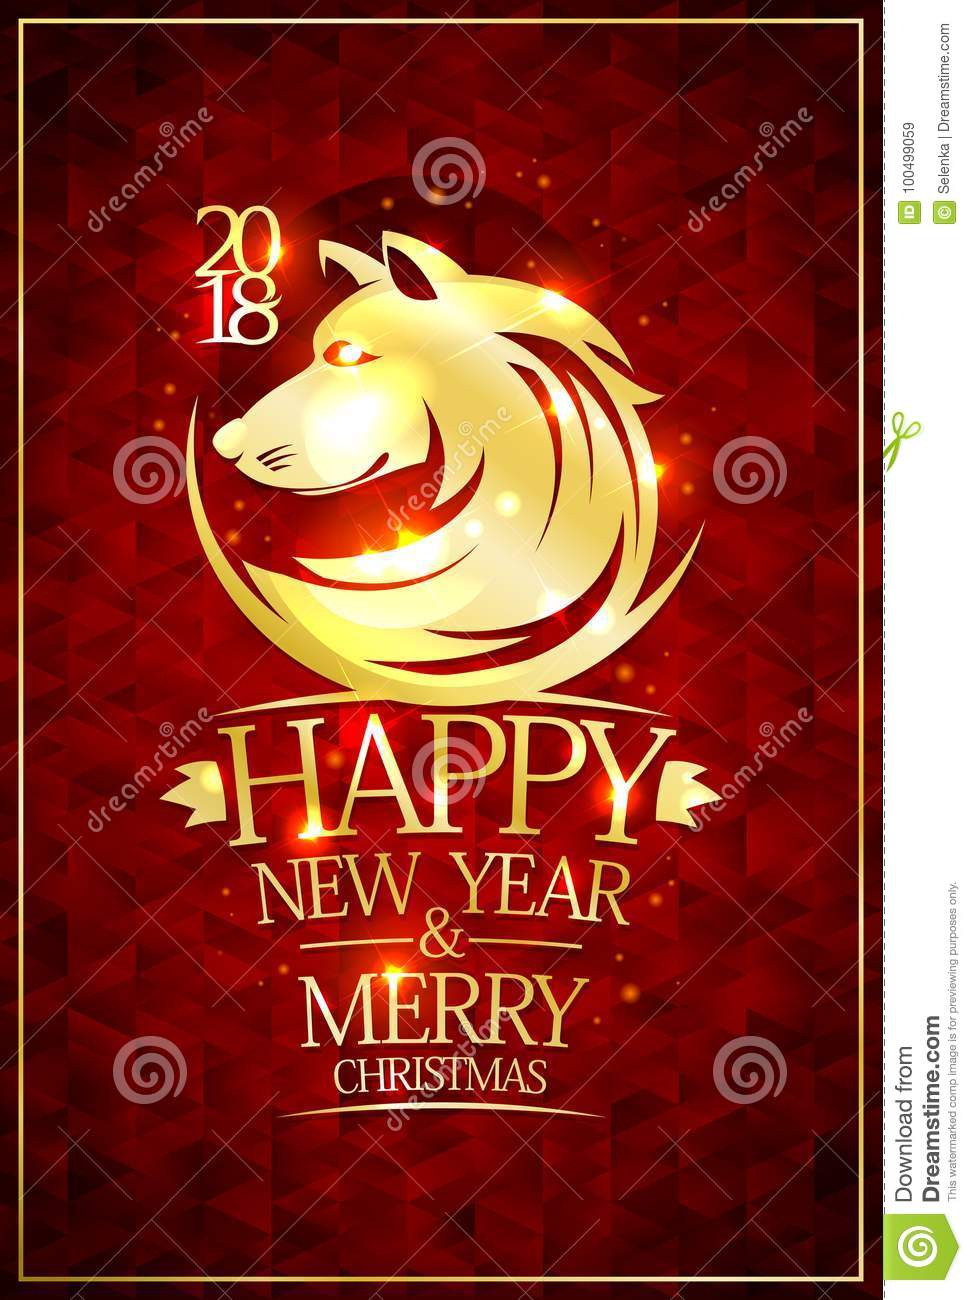 2018 Happy New Year And Merry Christmas Card Stock Vector